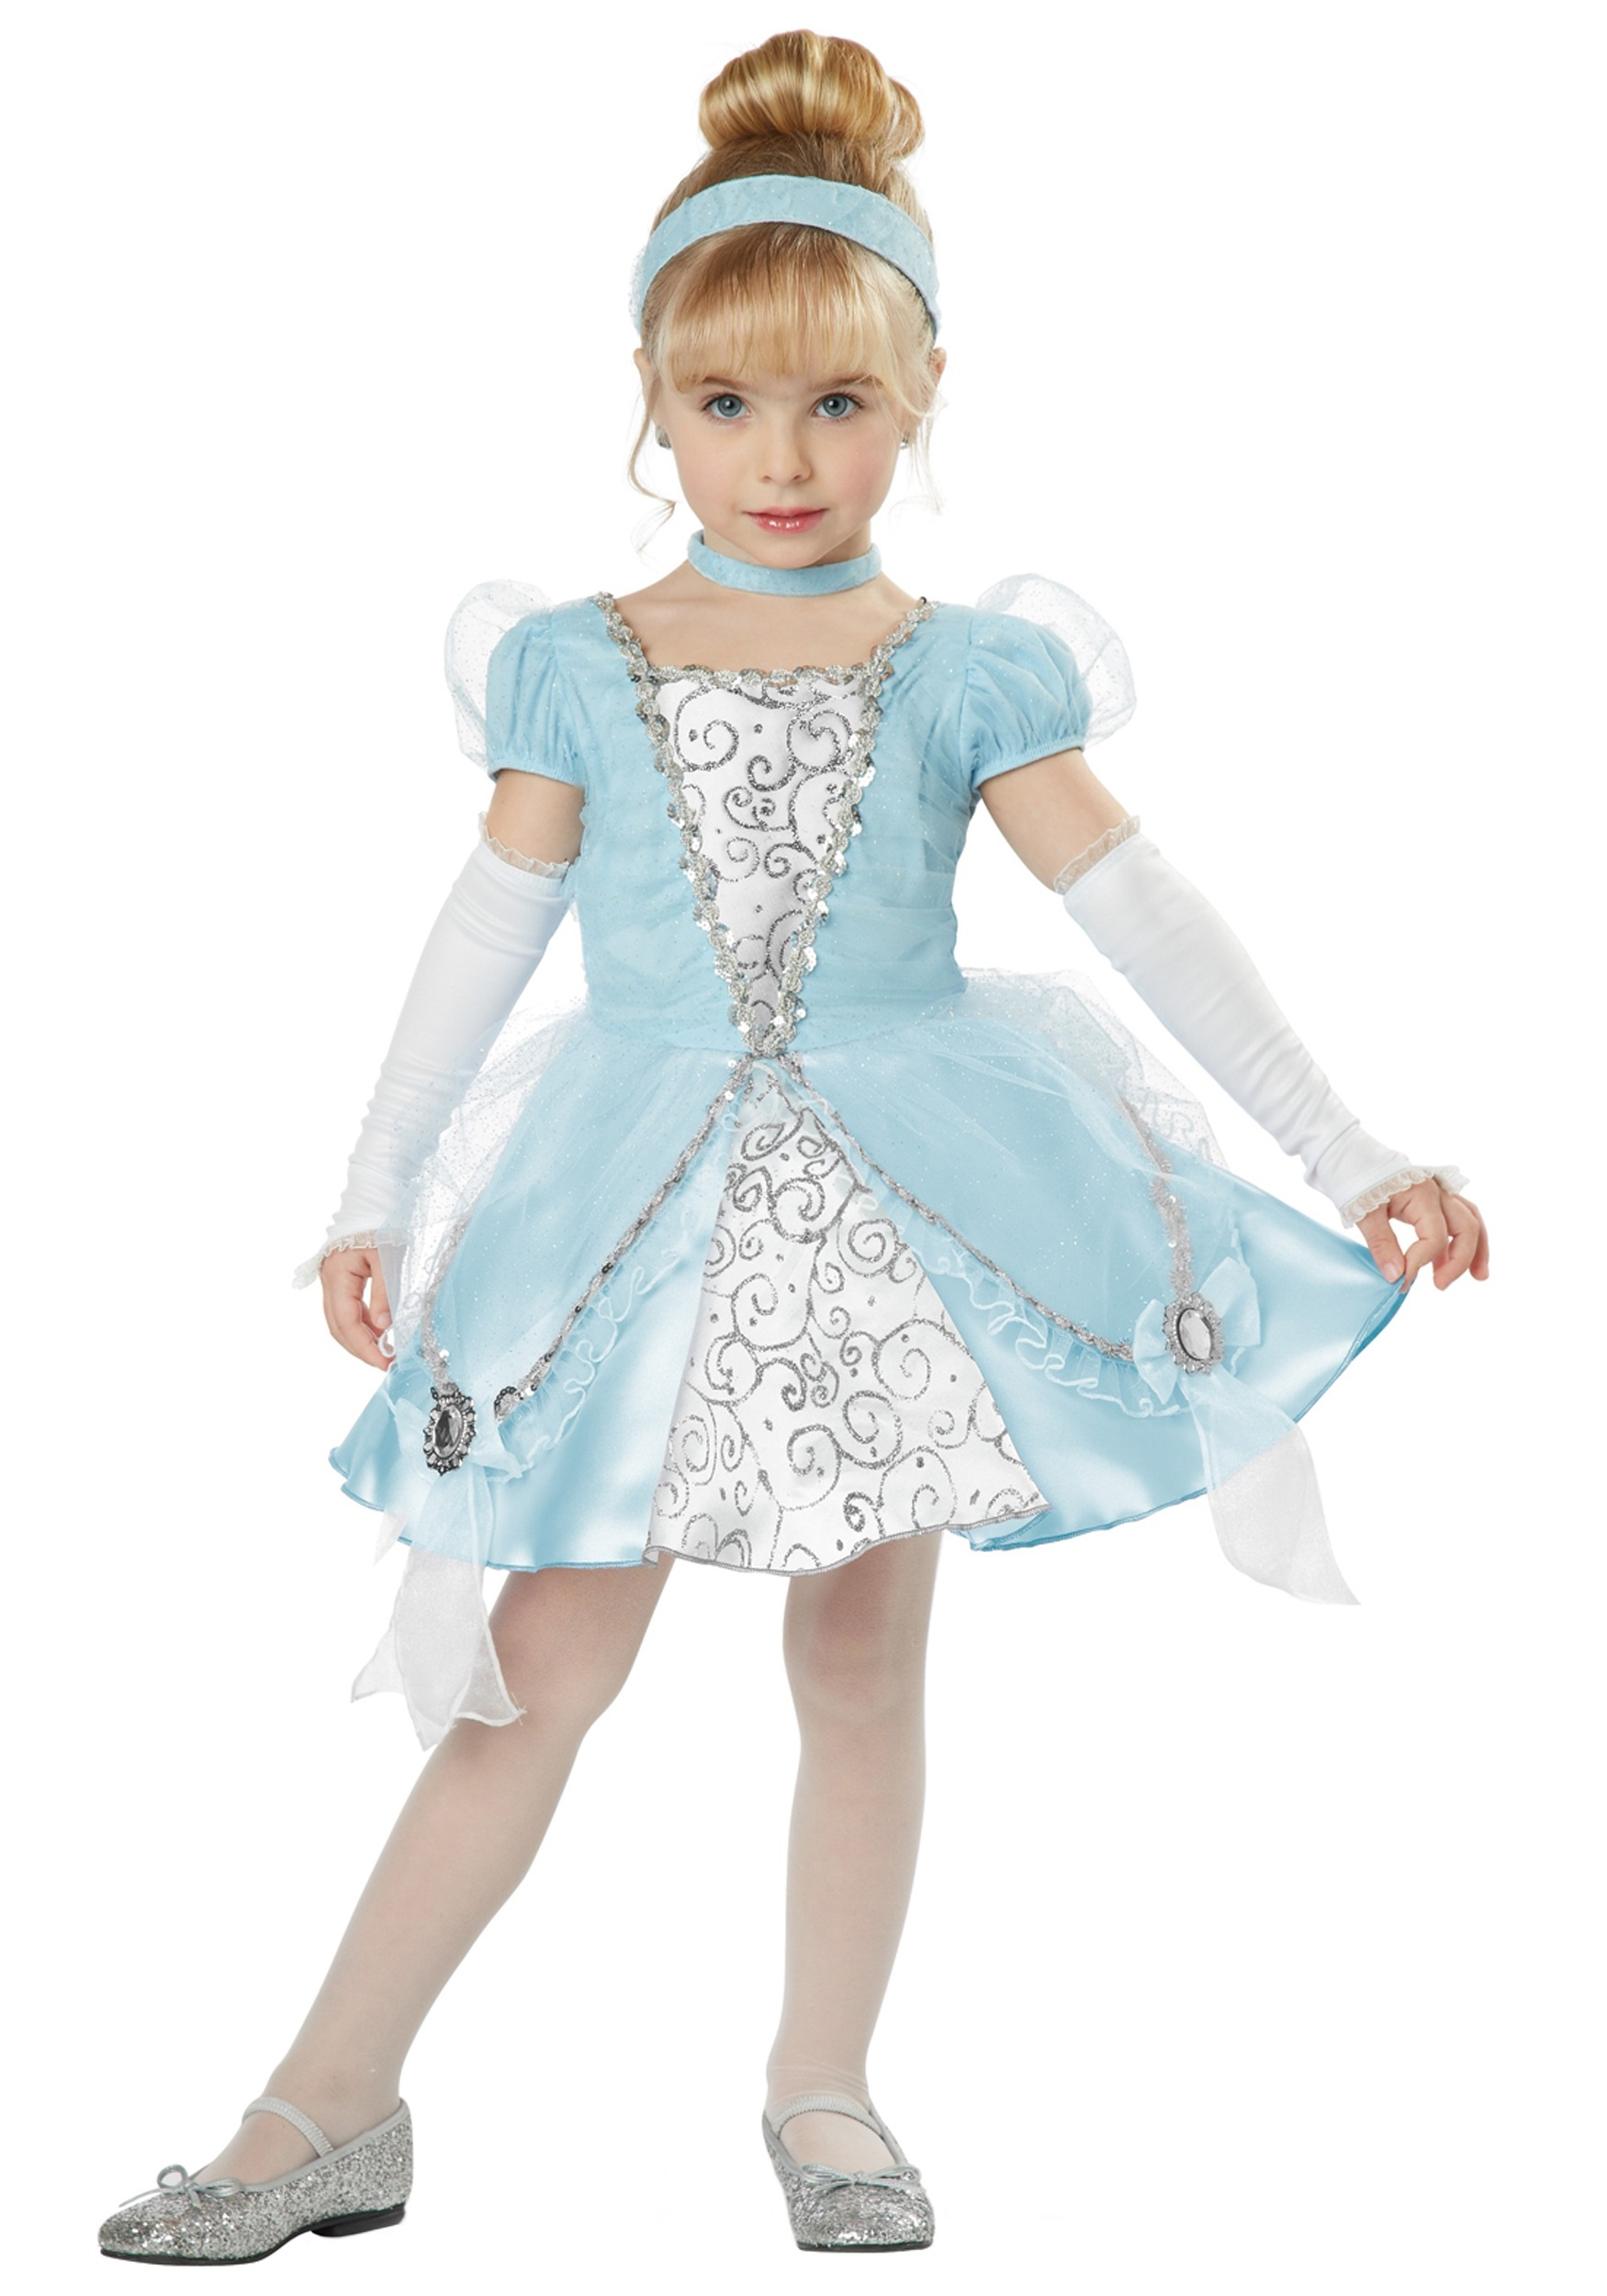 Deluxe Toddler Cinderella Costume  sc 1 st  Halloween Costumes & Deluxe Toddler Cinderella Costume - Halloween Costumes